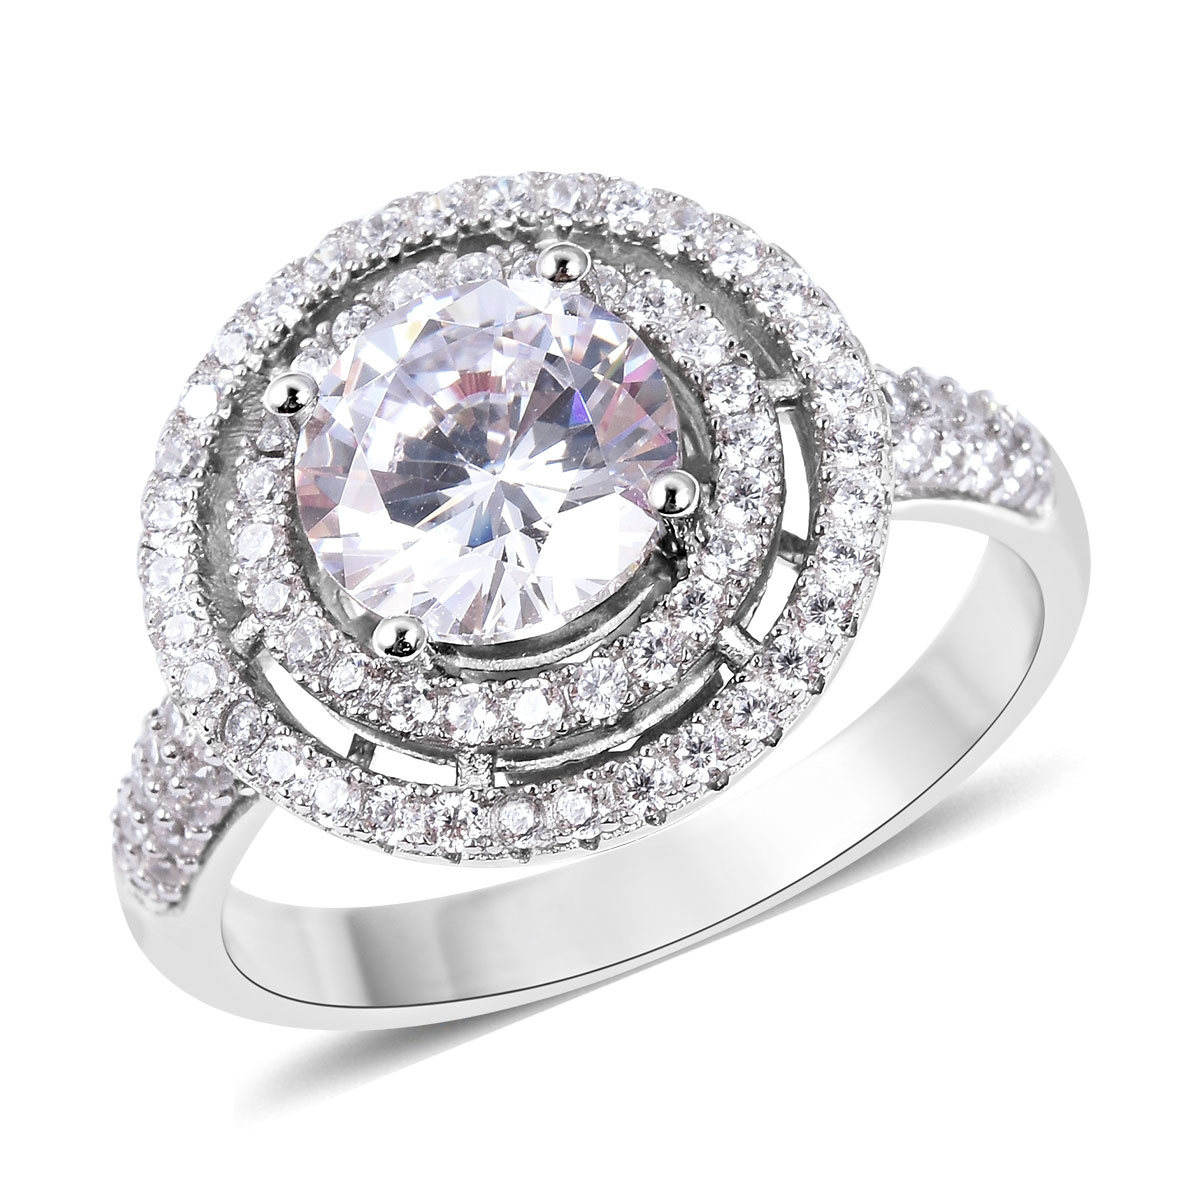 b77ced15bbba2 LUSTRO STELLA CZ Halo Ring in Sterling Silver (Size 11.0) 3.24 ctw